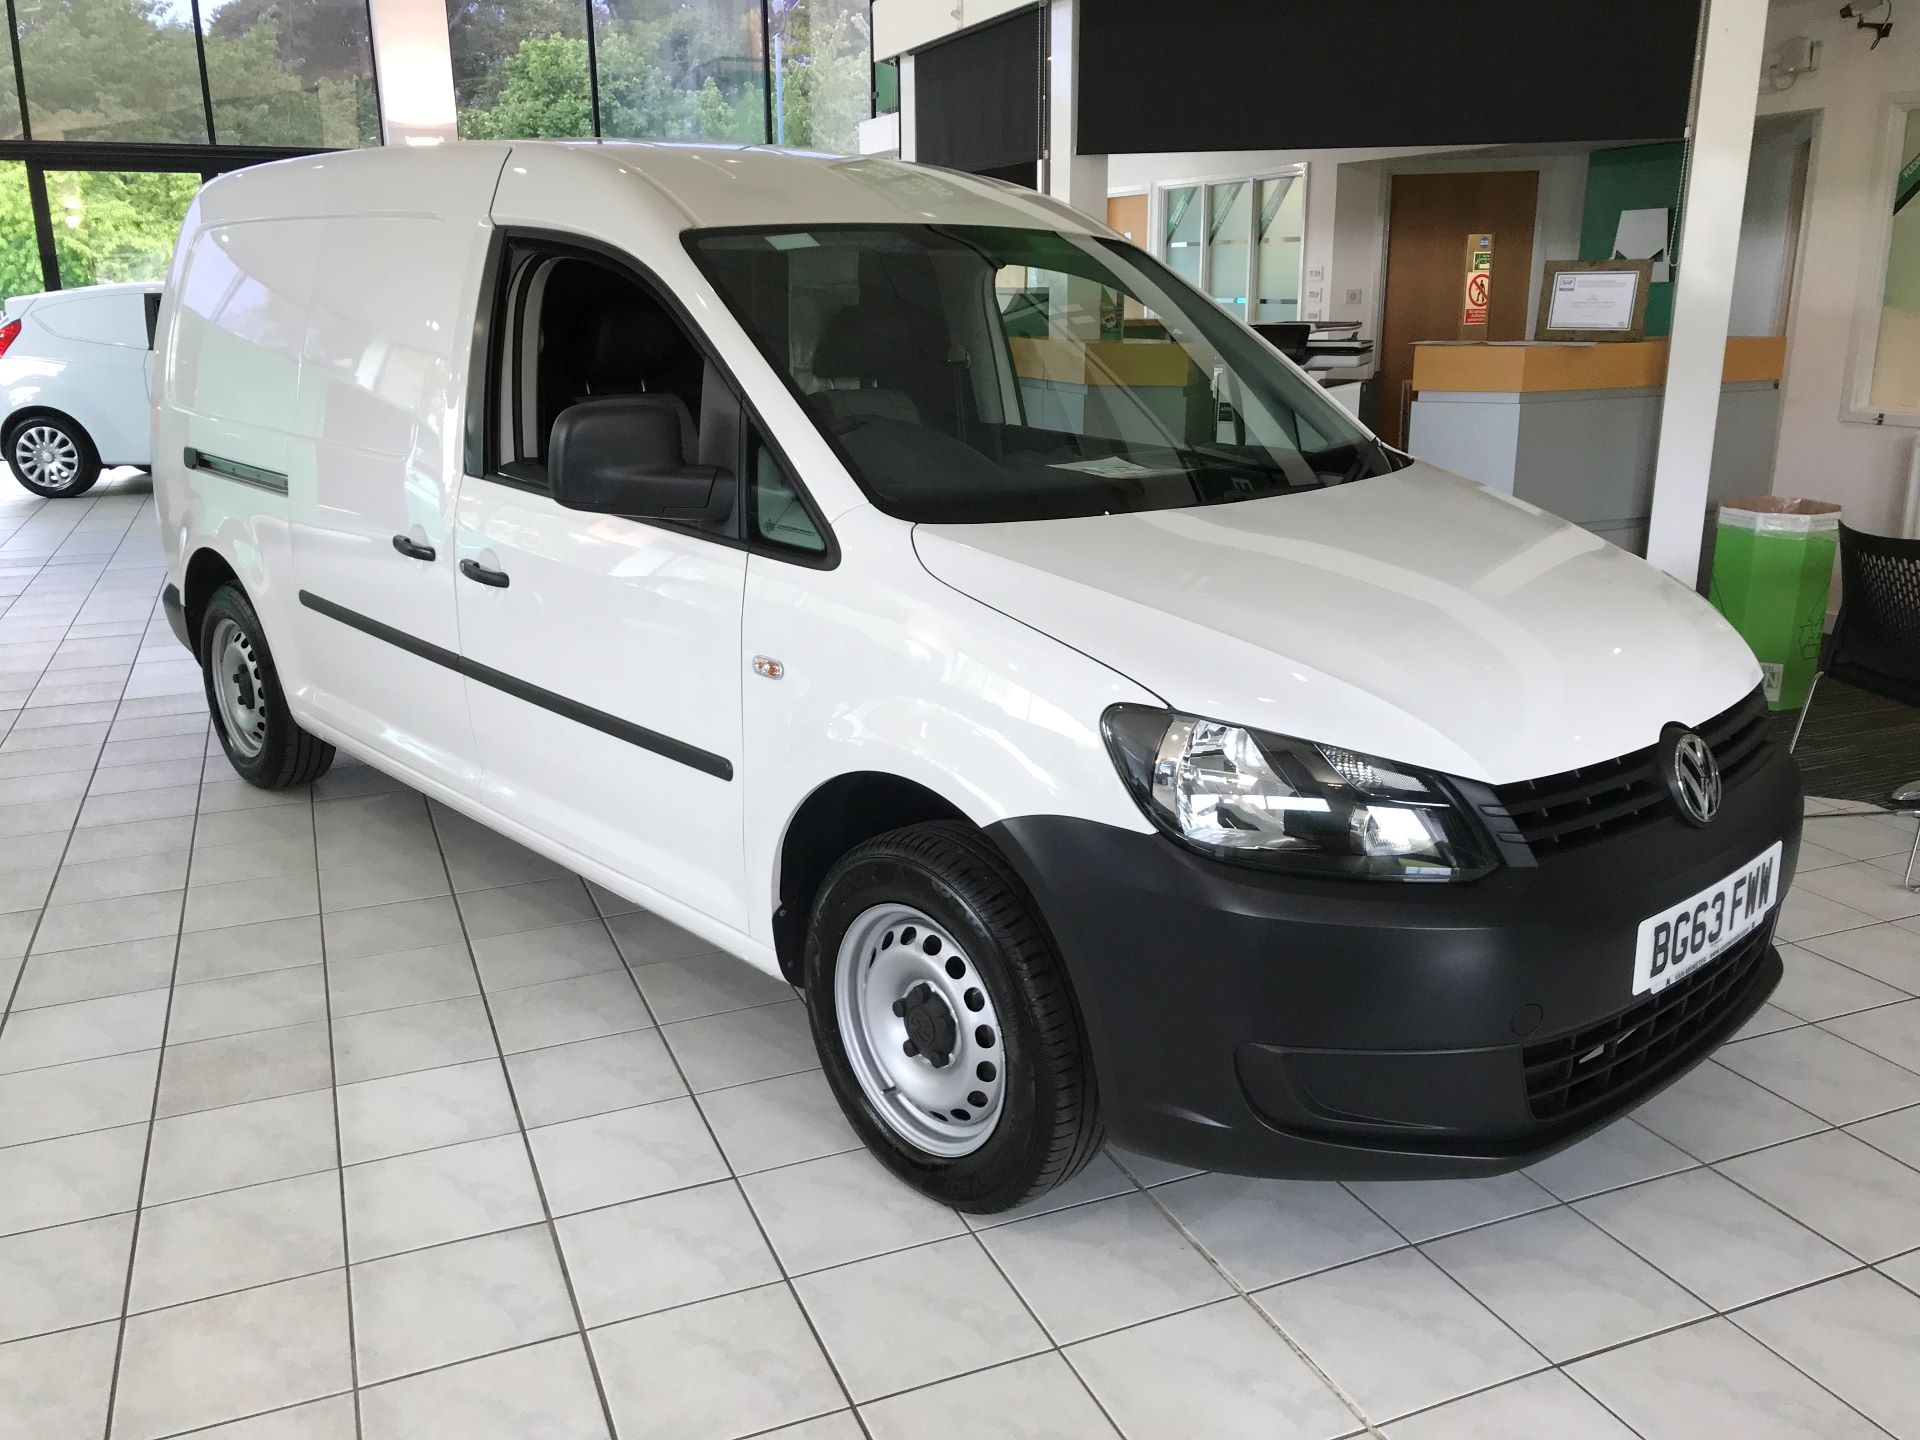 2014 Volkswagen Caddy Maxi 1.6 102PS BLUEMOTION TECH 102 STARTLINE  *VALUE RANGE VEHICLE CONDITION REFLECTED IN PRICE* (BG63FWW)